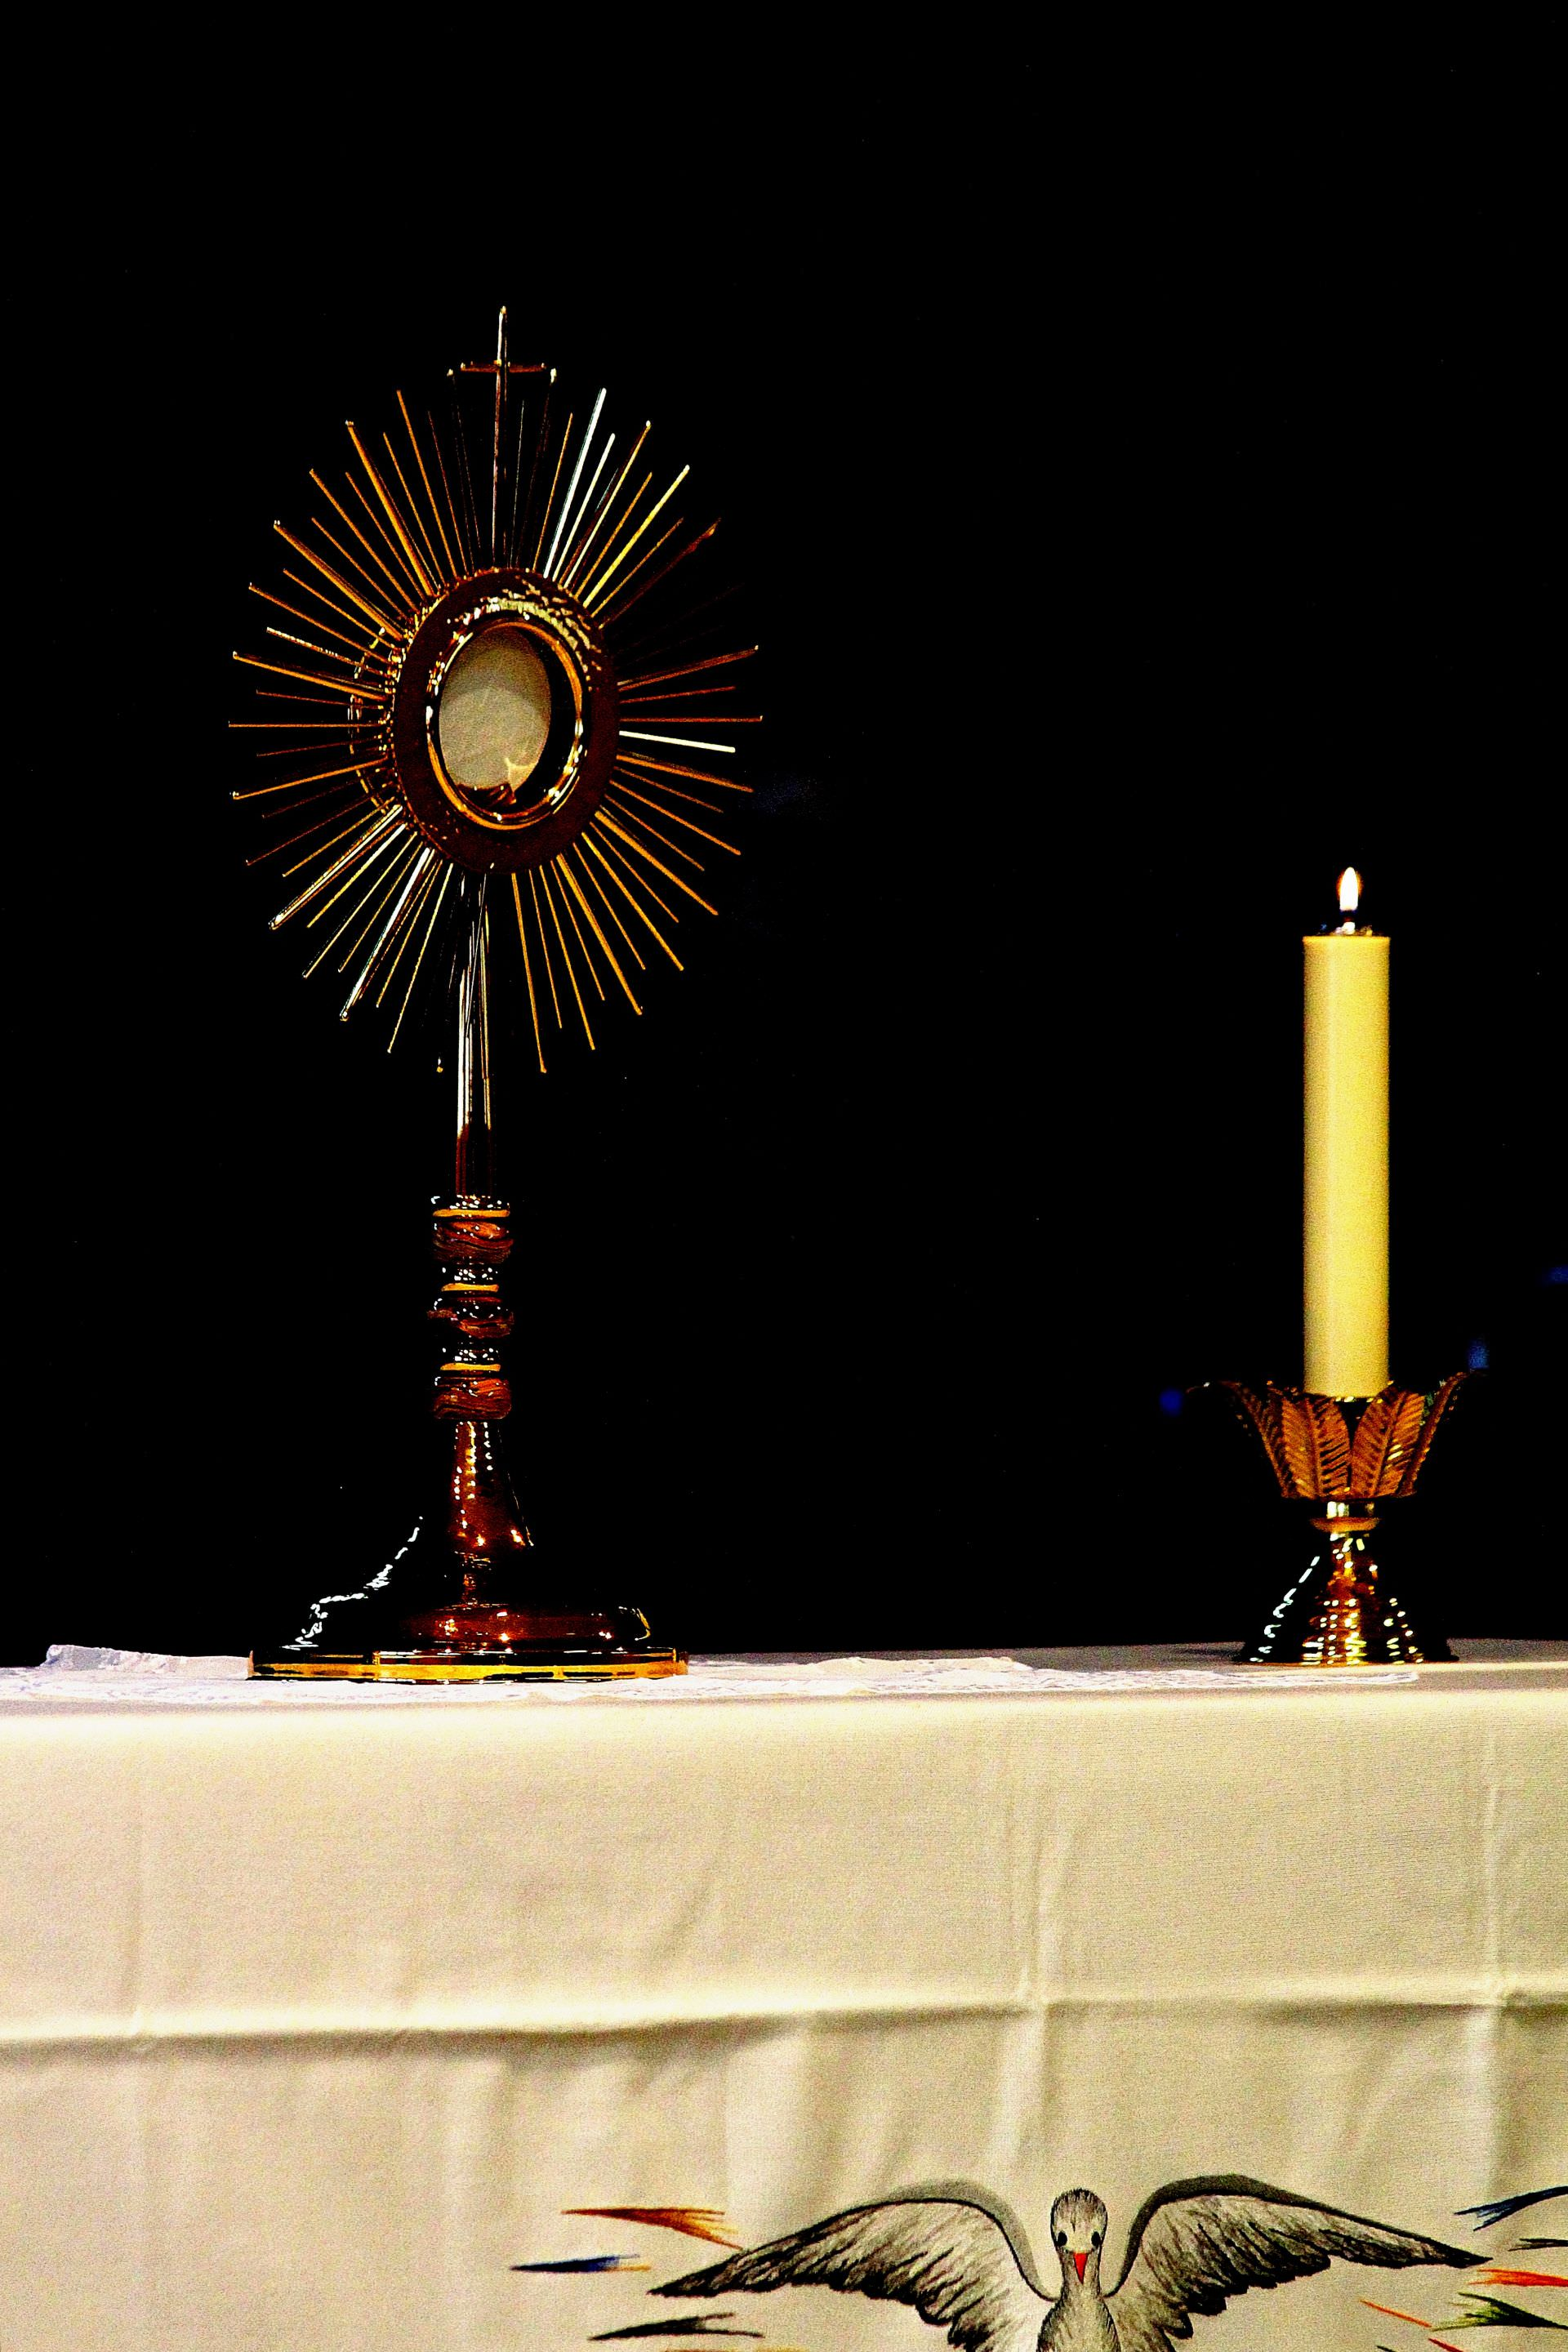 light, exposition, blessed sacrament, eucharistic adoration, holy hour, to worship, eucharist, bread of life, god, sir, bread from heaven, ostensorio, custody, sailing, fire, light, to illuminate